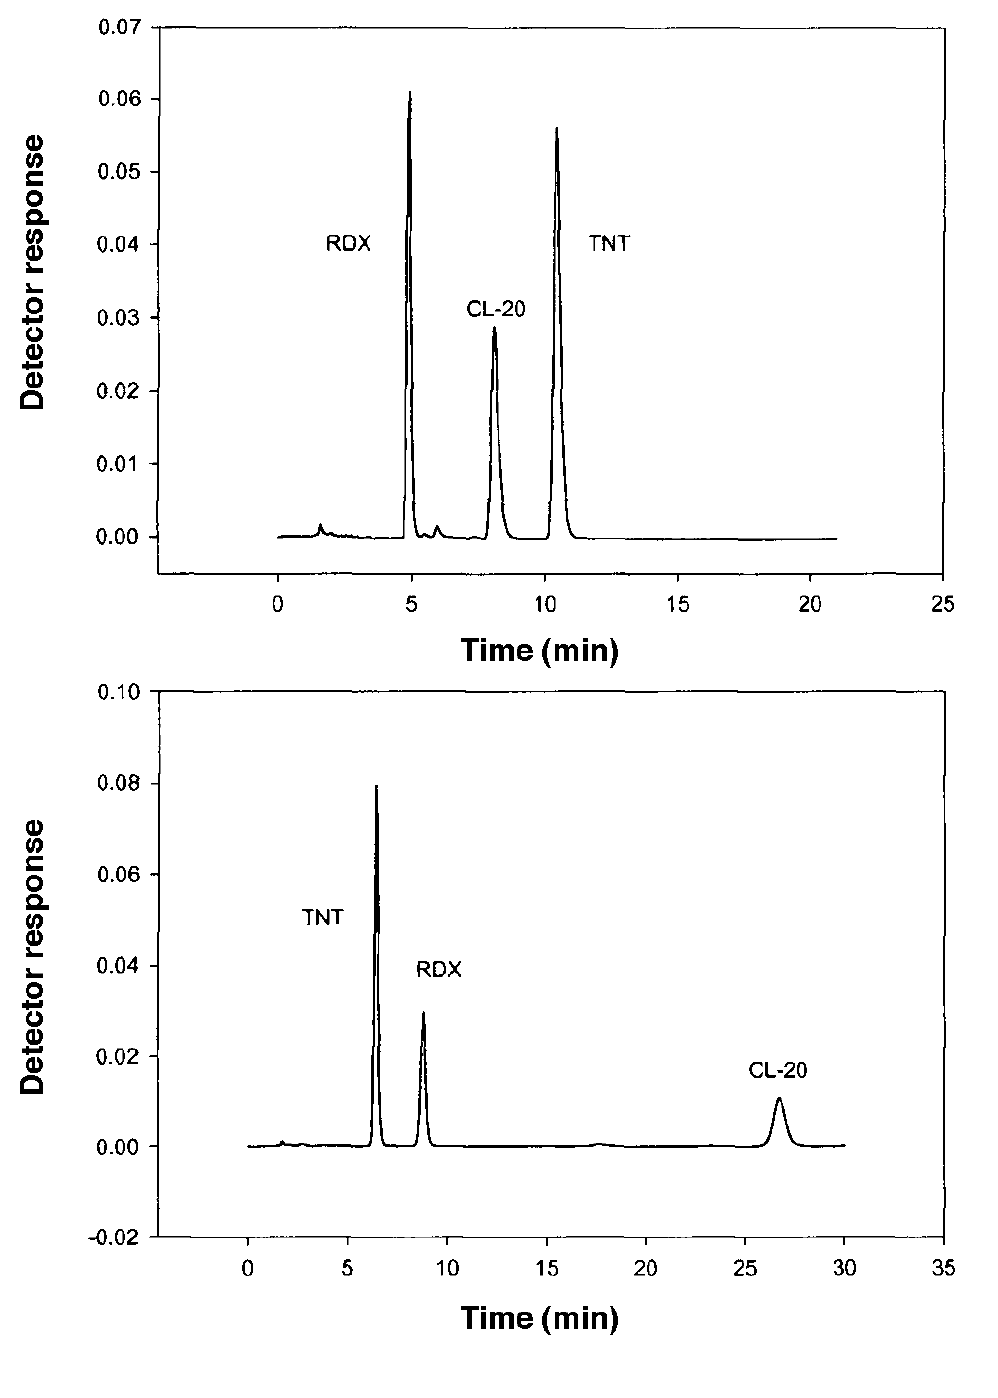 Figure 7 illustrates chromatograms showing the analysis of a mixture of common explosive compounds plus CL-20 using the proposed method on C-18 and CN columns.